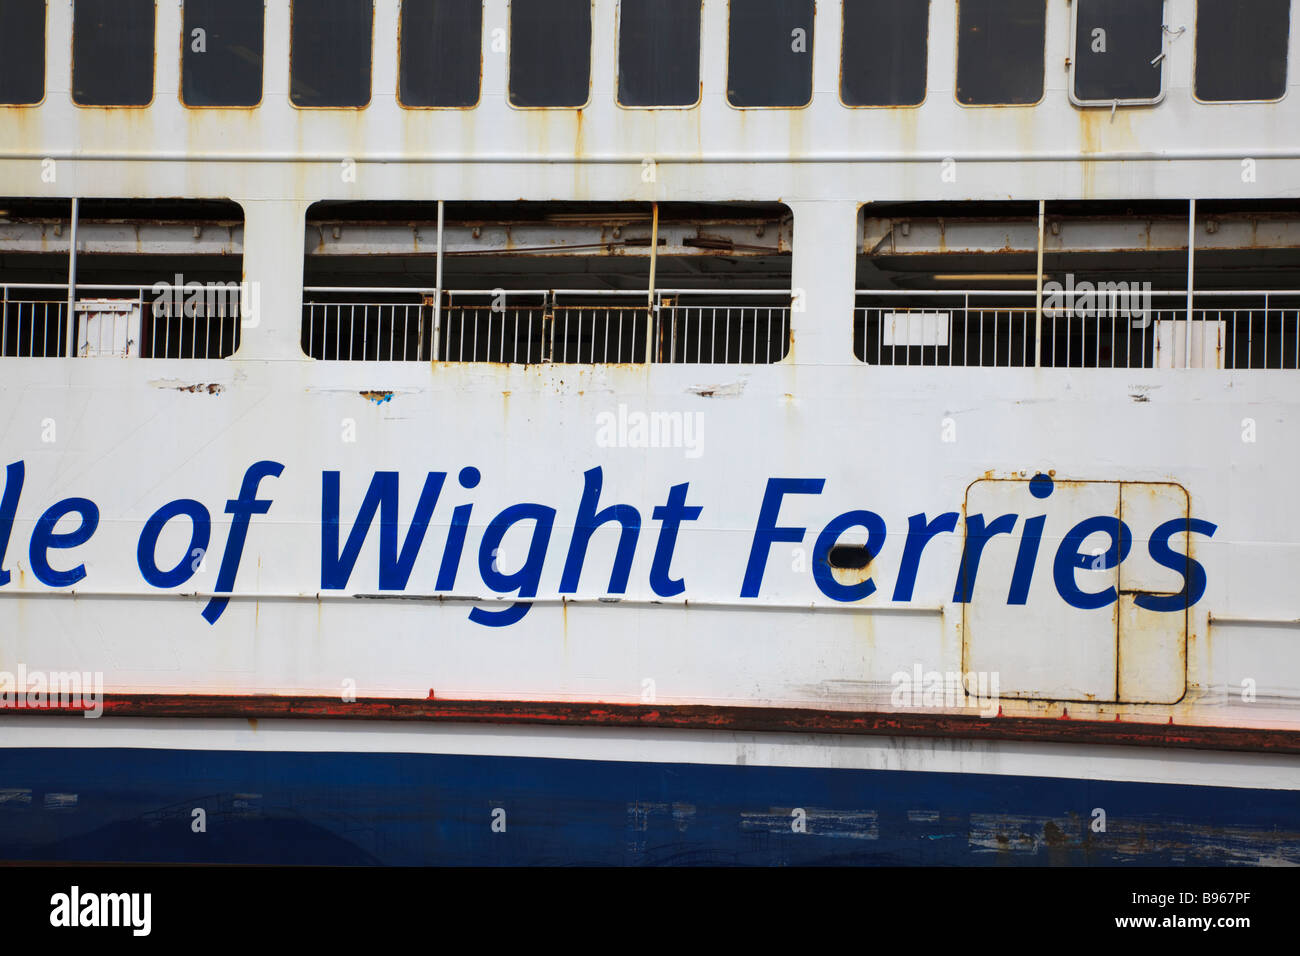 Detail of a rusting Ferry on the Portsmouth to Isle of Wight Route - Stock Image